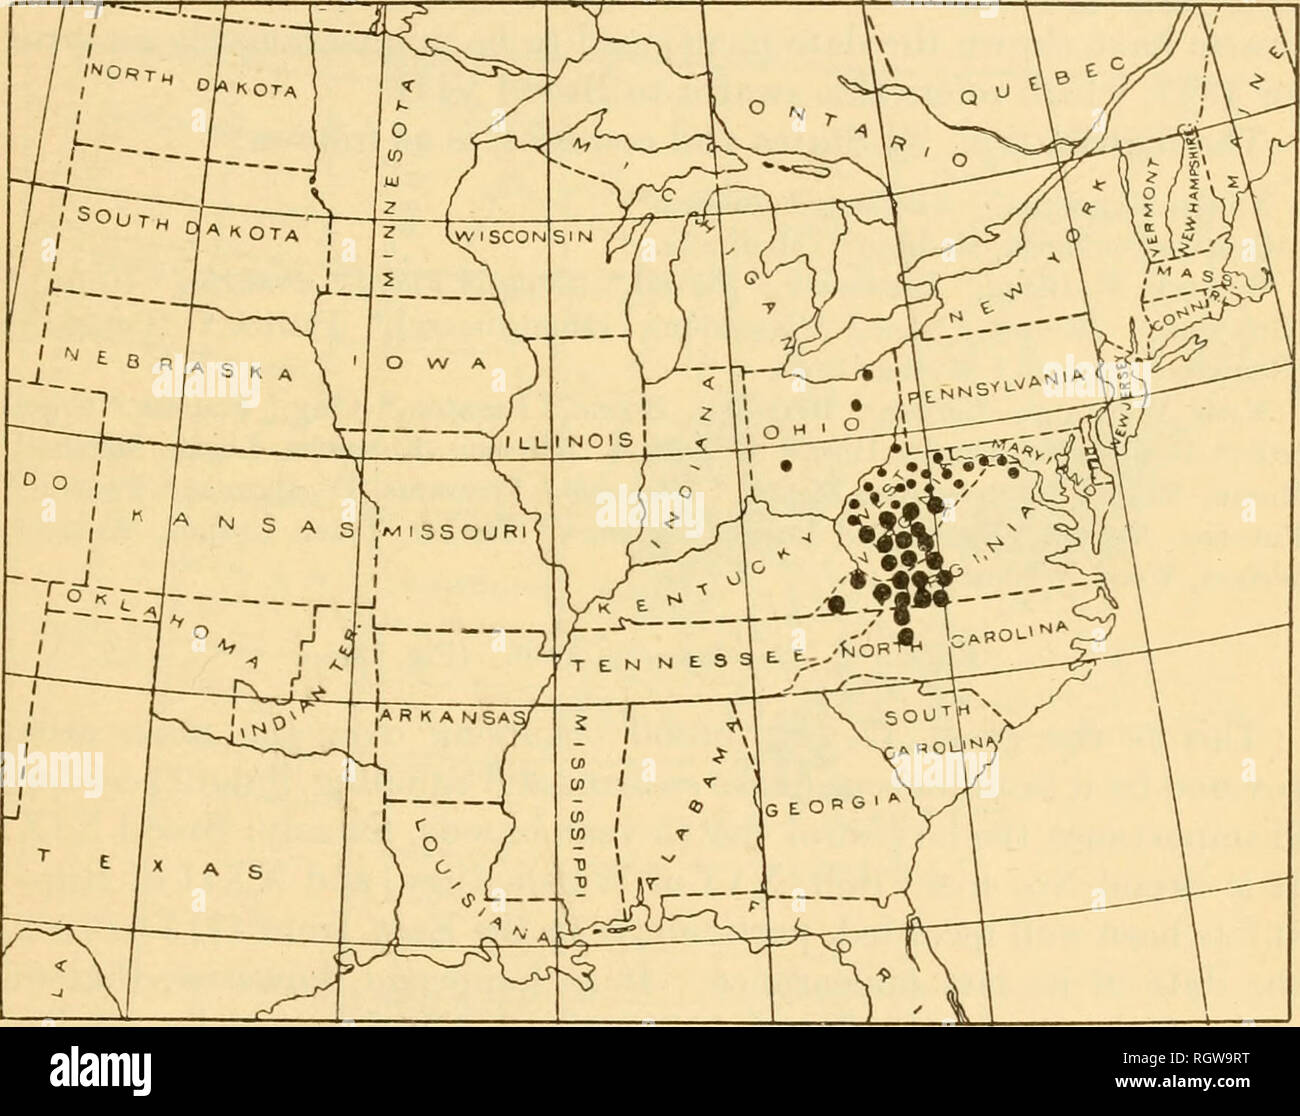 . Bulletin. Insects; Insect pests; Entomology; Insects; Insect pests; Entomology. BROOD IX 8EPTENDEGIM 1918. 49 confirmation. The large dots on the map indicate starred counties and the small ones doubtful records or scattered presence. The distribution, by States and counties, is as follows: Illinois.â(Whiteside) (?). Maryland.âHarford. Mass.vchusetts.âDukes* (Marthas Vineyard). New Jersey.âEssex. New York.â(Chautauqua) (?). North Carolina.âMoore (?). Ohio.âBelmont, Carroll* CoZwm6iana,* Hamilton, Jefferson* Mahoning * Fortage* Stark,* Trumbull* Pennsylvania.âAllegheny, Armstrong* Beaver* But - Stock Image